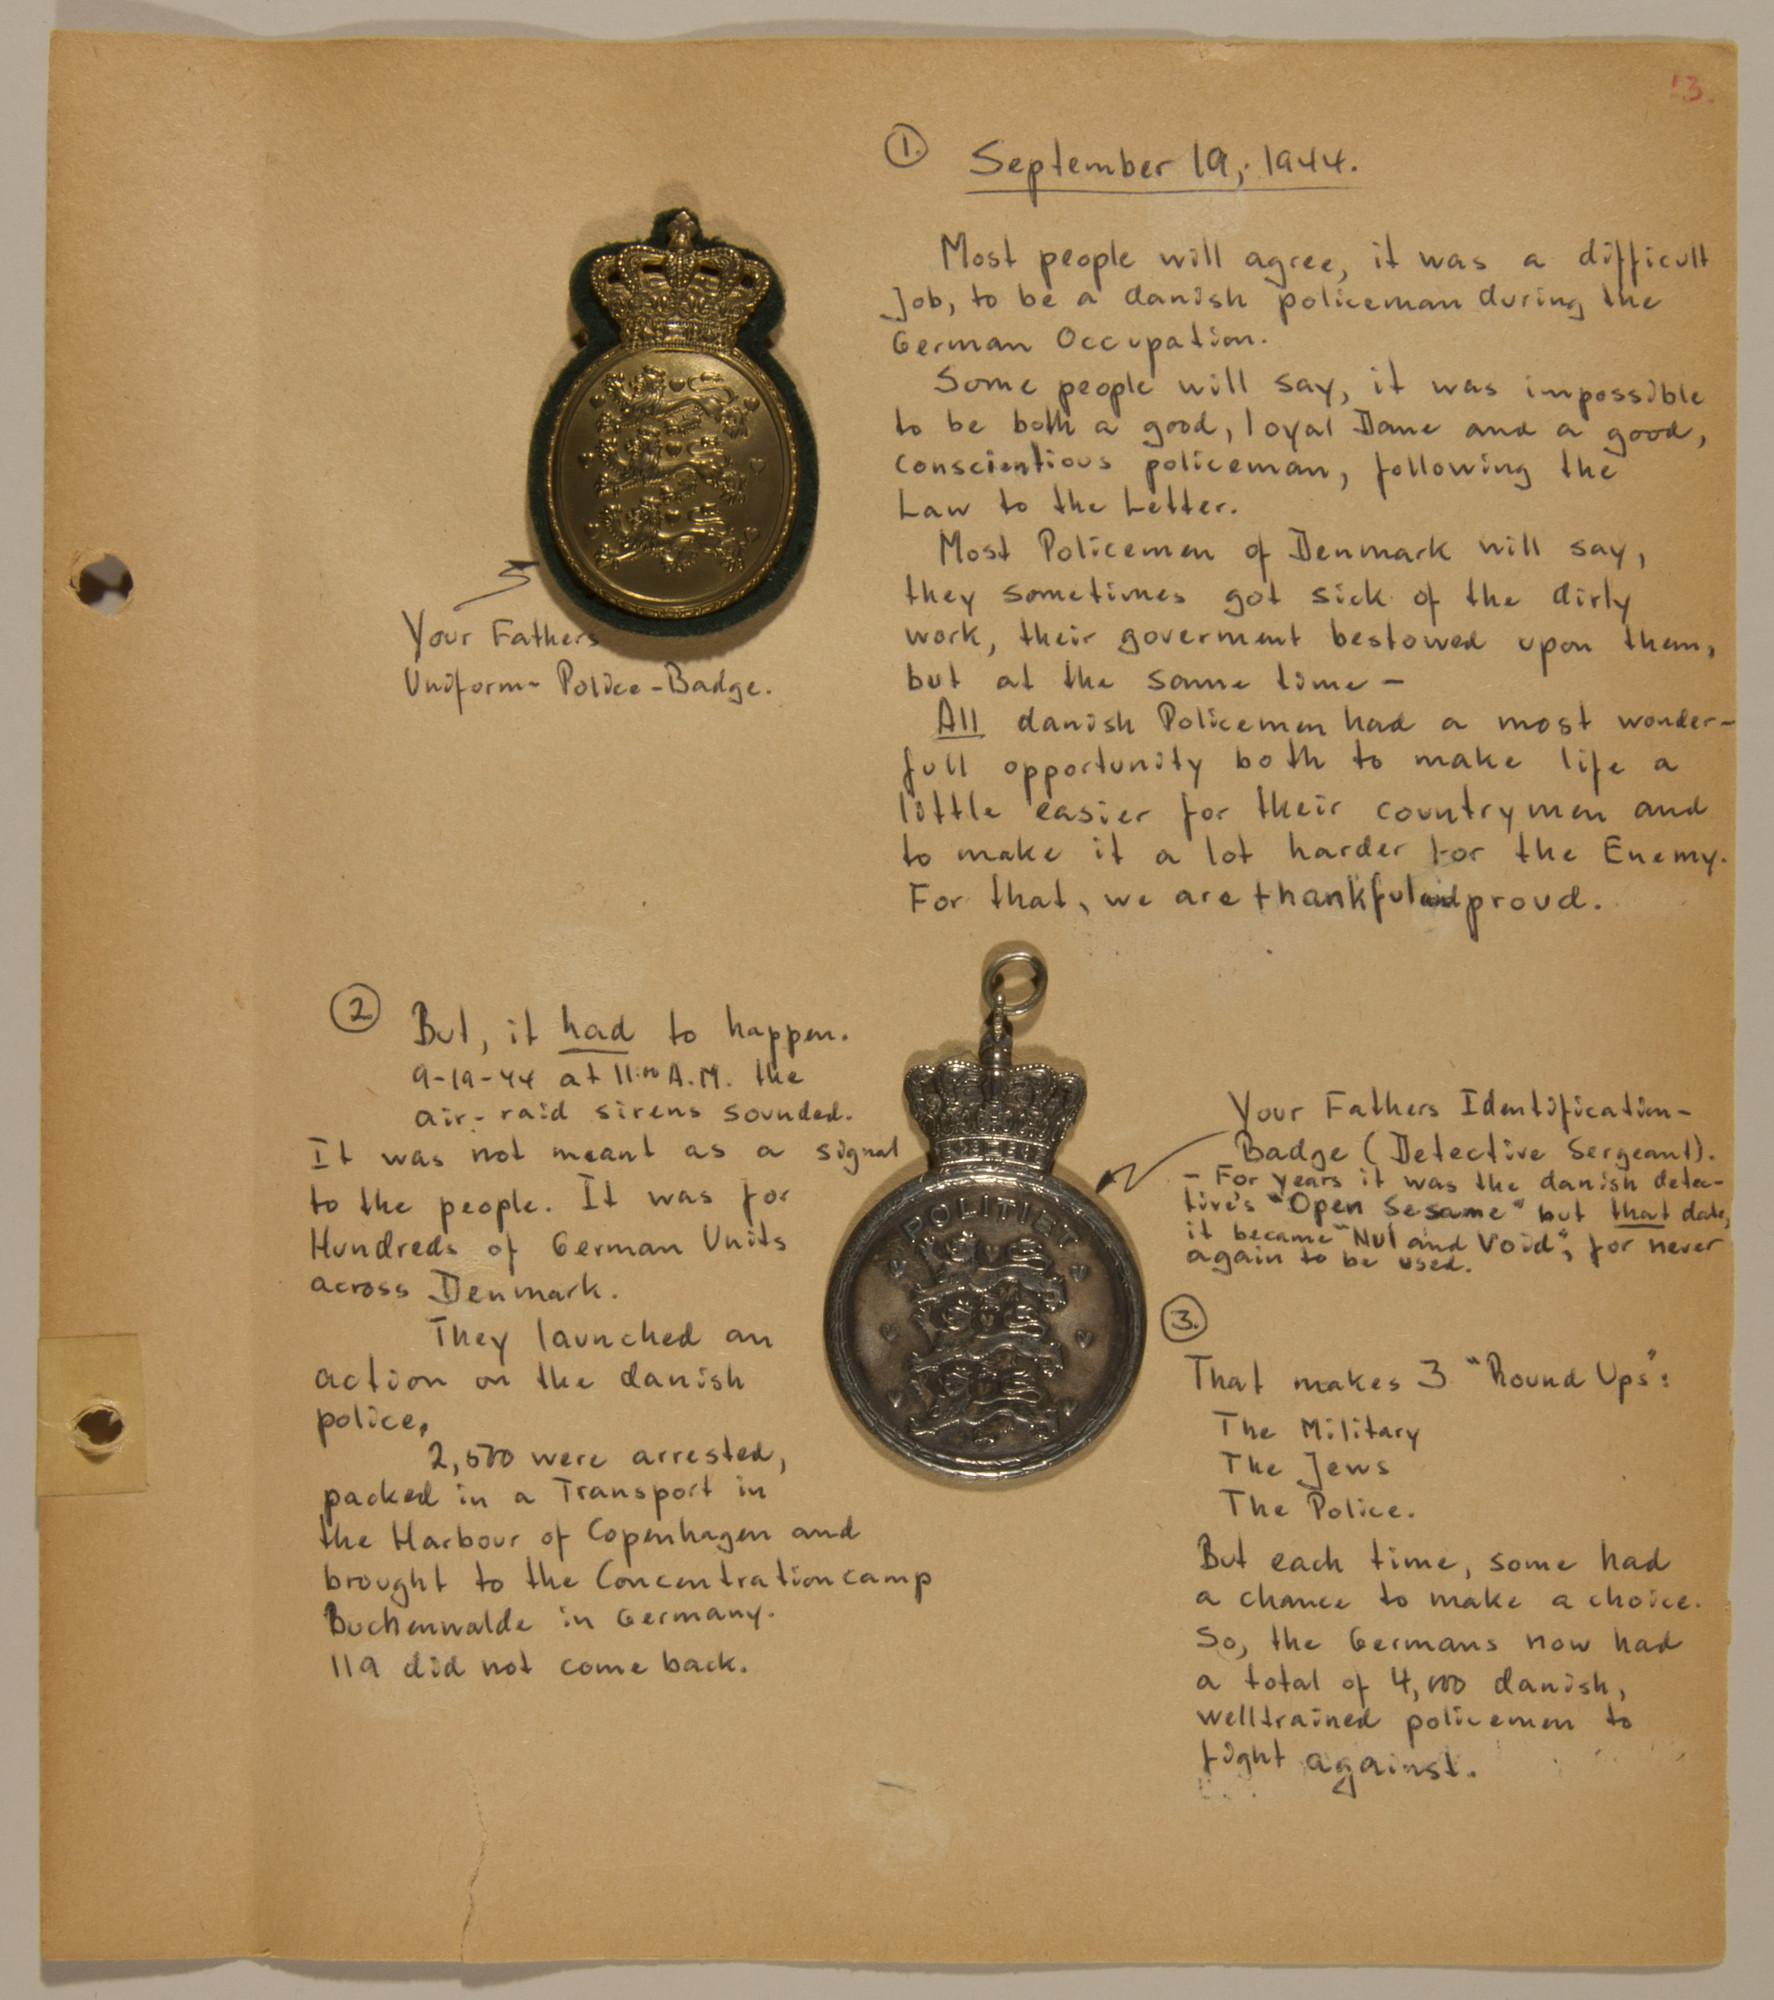 Page from volume five of a set of scrapbooks compiled by Bjorn Sibbern, a Danish policeman and resistance member, documenting the German occupation of Denmark.  This page contains Sibbern's police badges and a description of the round-up of policemen for their involvement in the resistance on September 19, 1944.